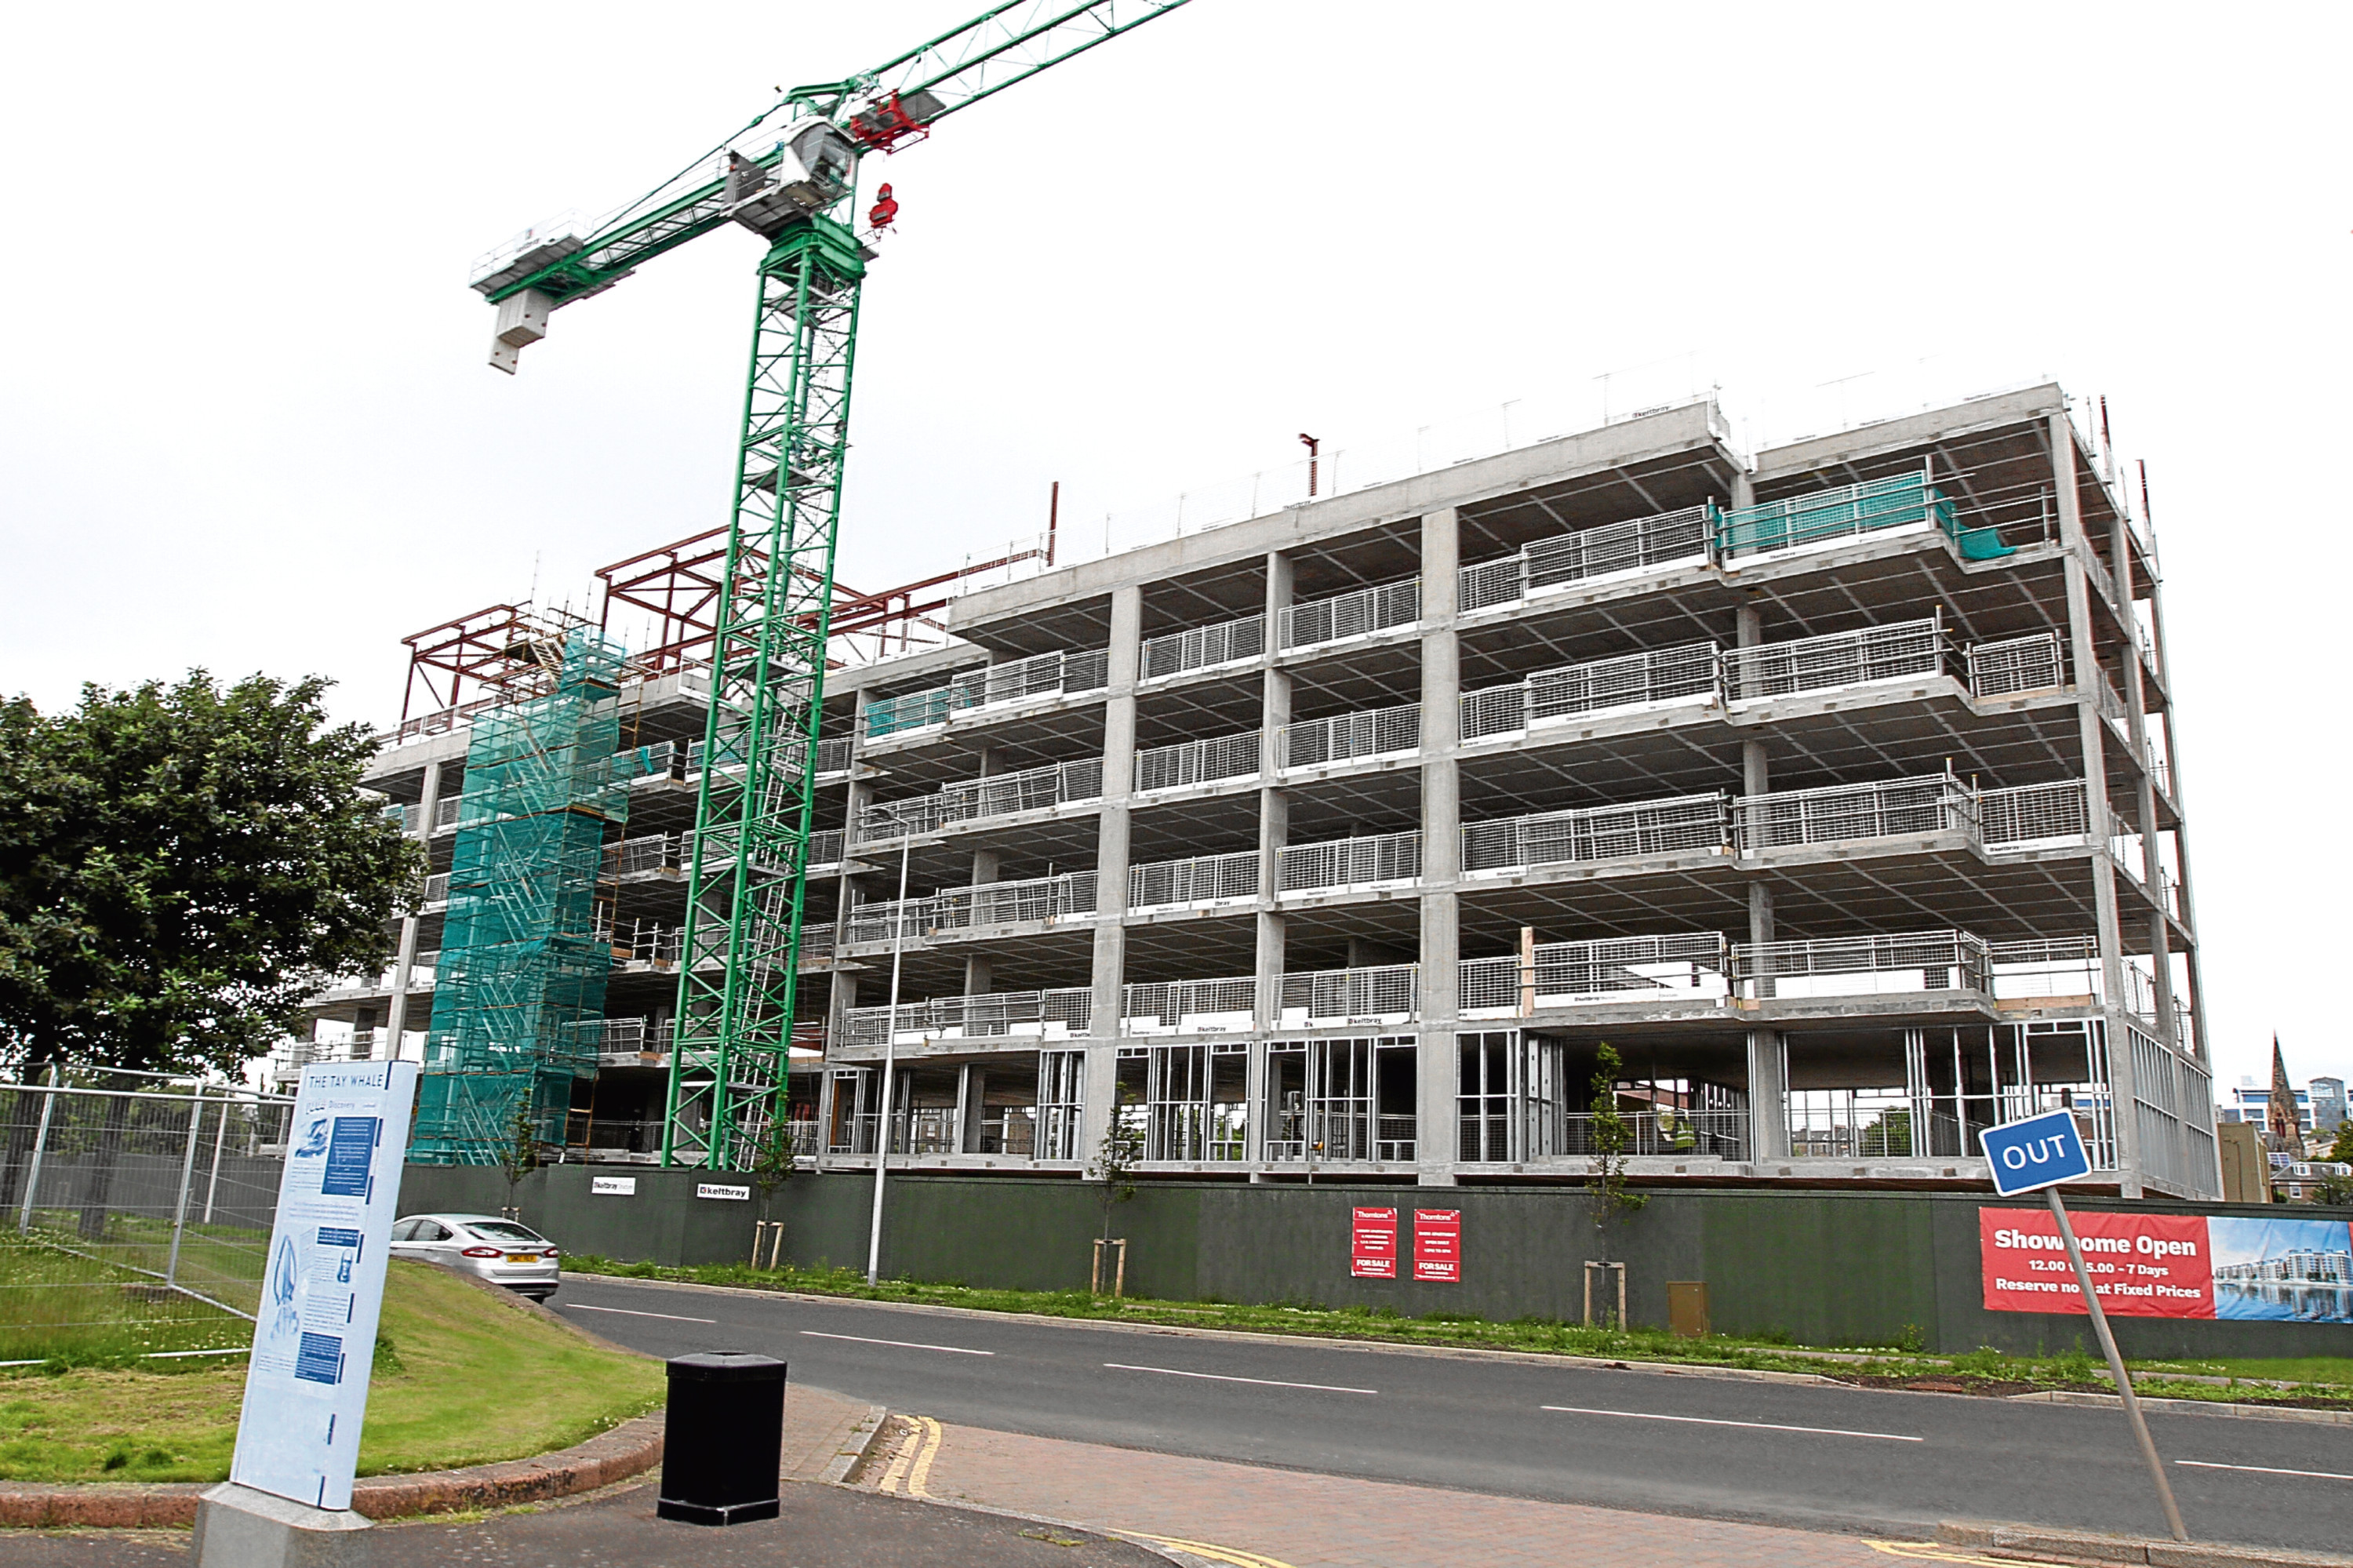 The luxury flats being built at Riverside Drive by developer H&H Properties.